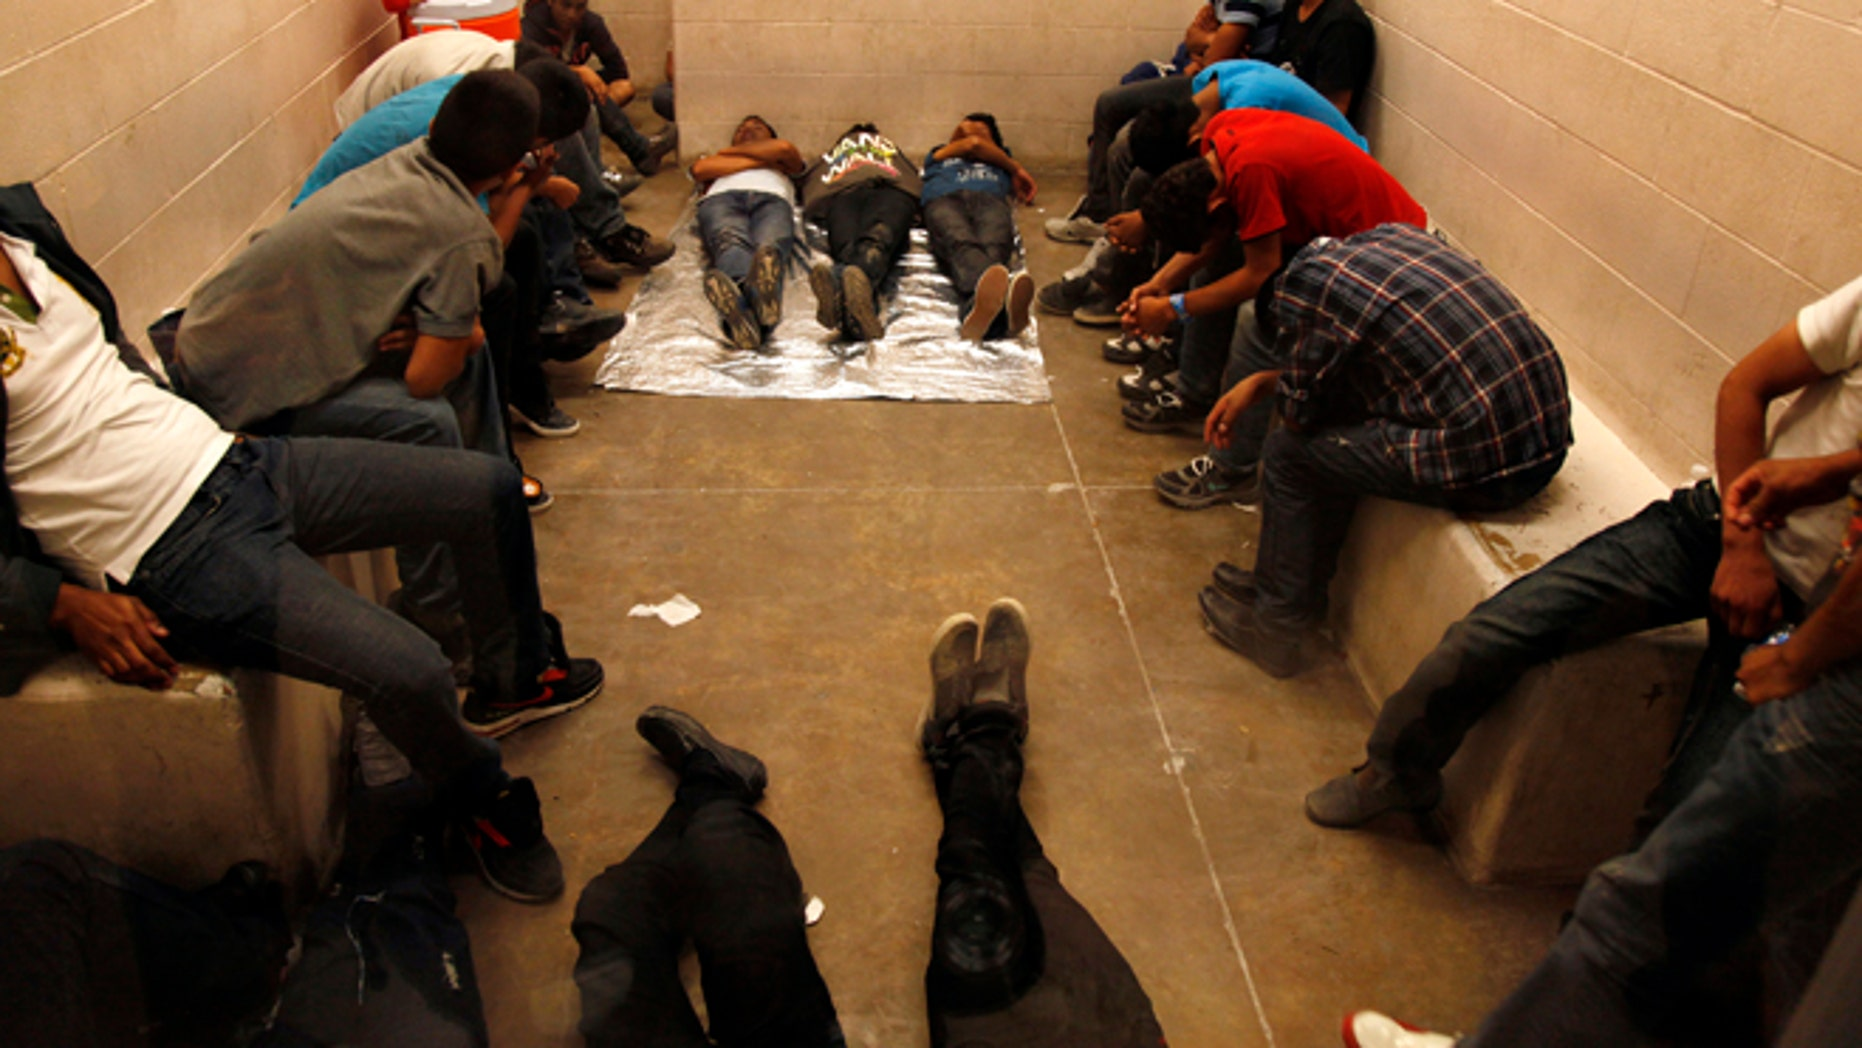 MCALLEN, TX. --TUESDAY,  JULY 15, 2014 -- Immigrants who have been detained while crossing the border  are held inside the McAllen Border Patrol Station in McAllen, Texas, Tuesday July 15, 2014.   More than 350 detainees were being held  on Tuesday, July 15, 2014, at the station.  A solution for the growing crisis of tens of thousands of unaccompanied children showing up at the U.S.-Mexico border is looking increasingly elusive with three weeks left before Congress leaves Washington for an annual August recess.    (AP Photo/Los Angeles Times, Rick Loomis, Pool)